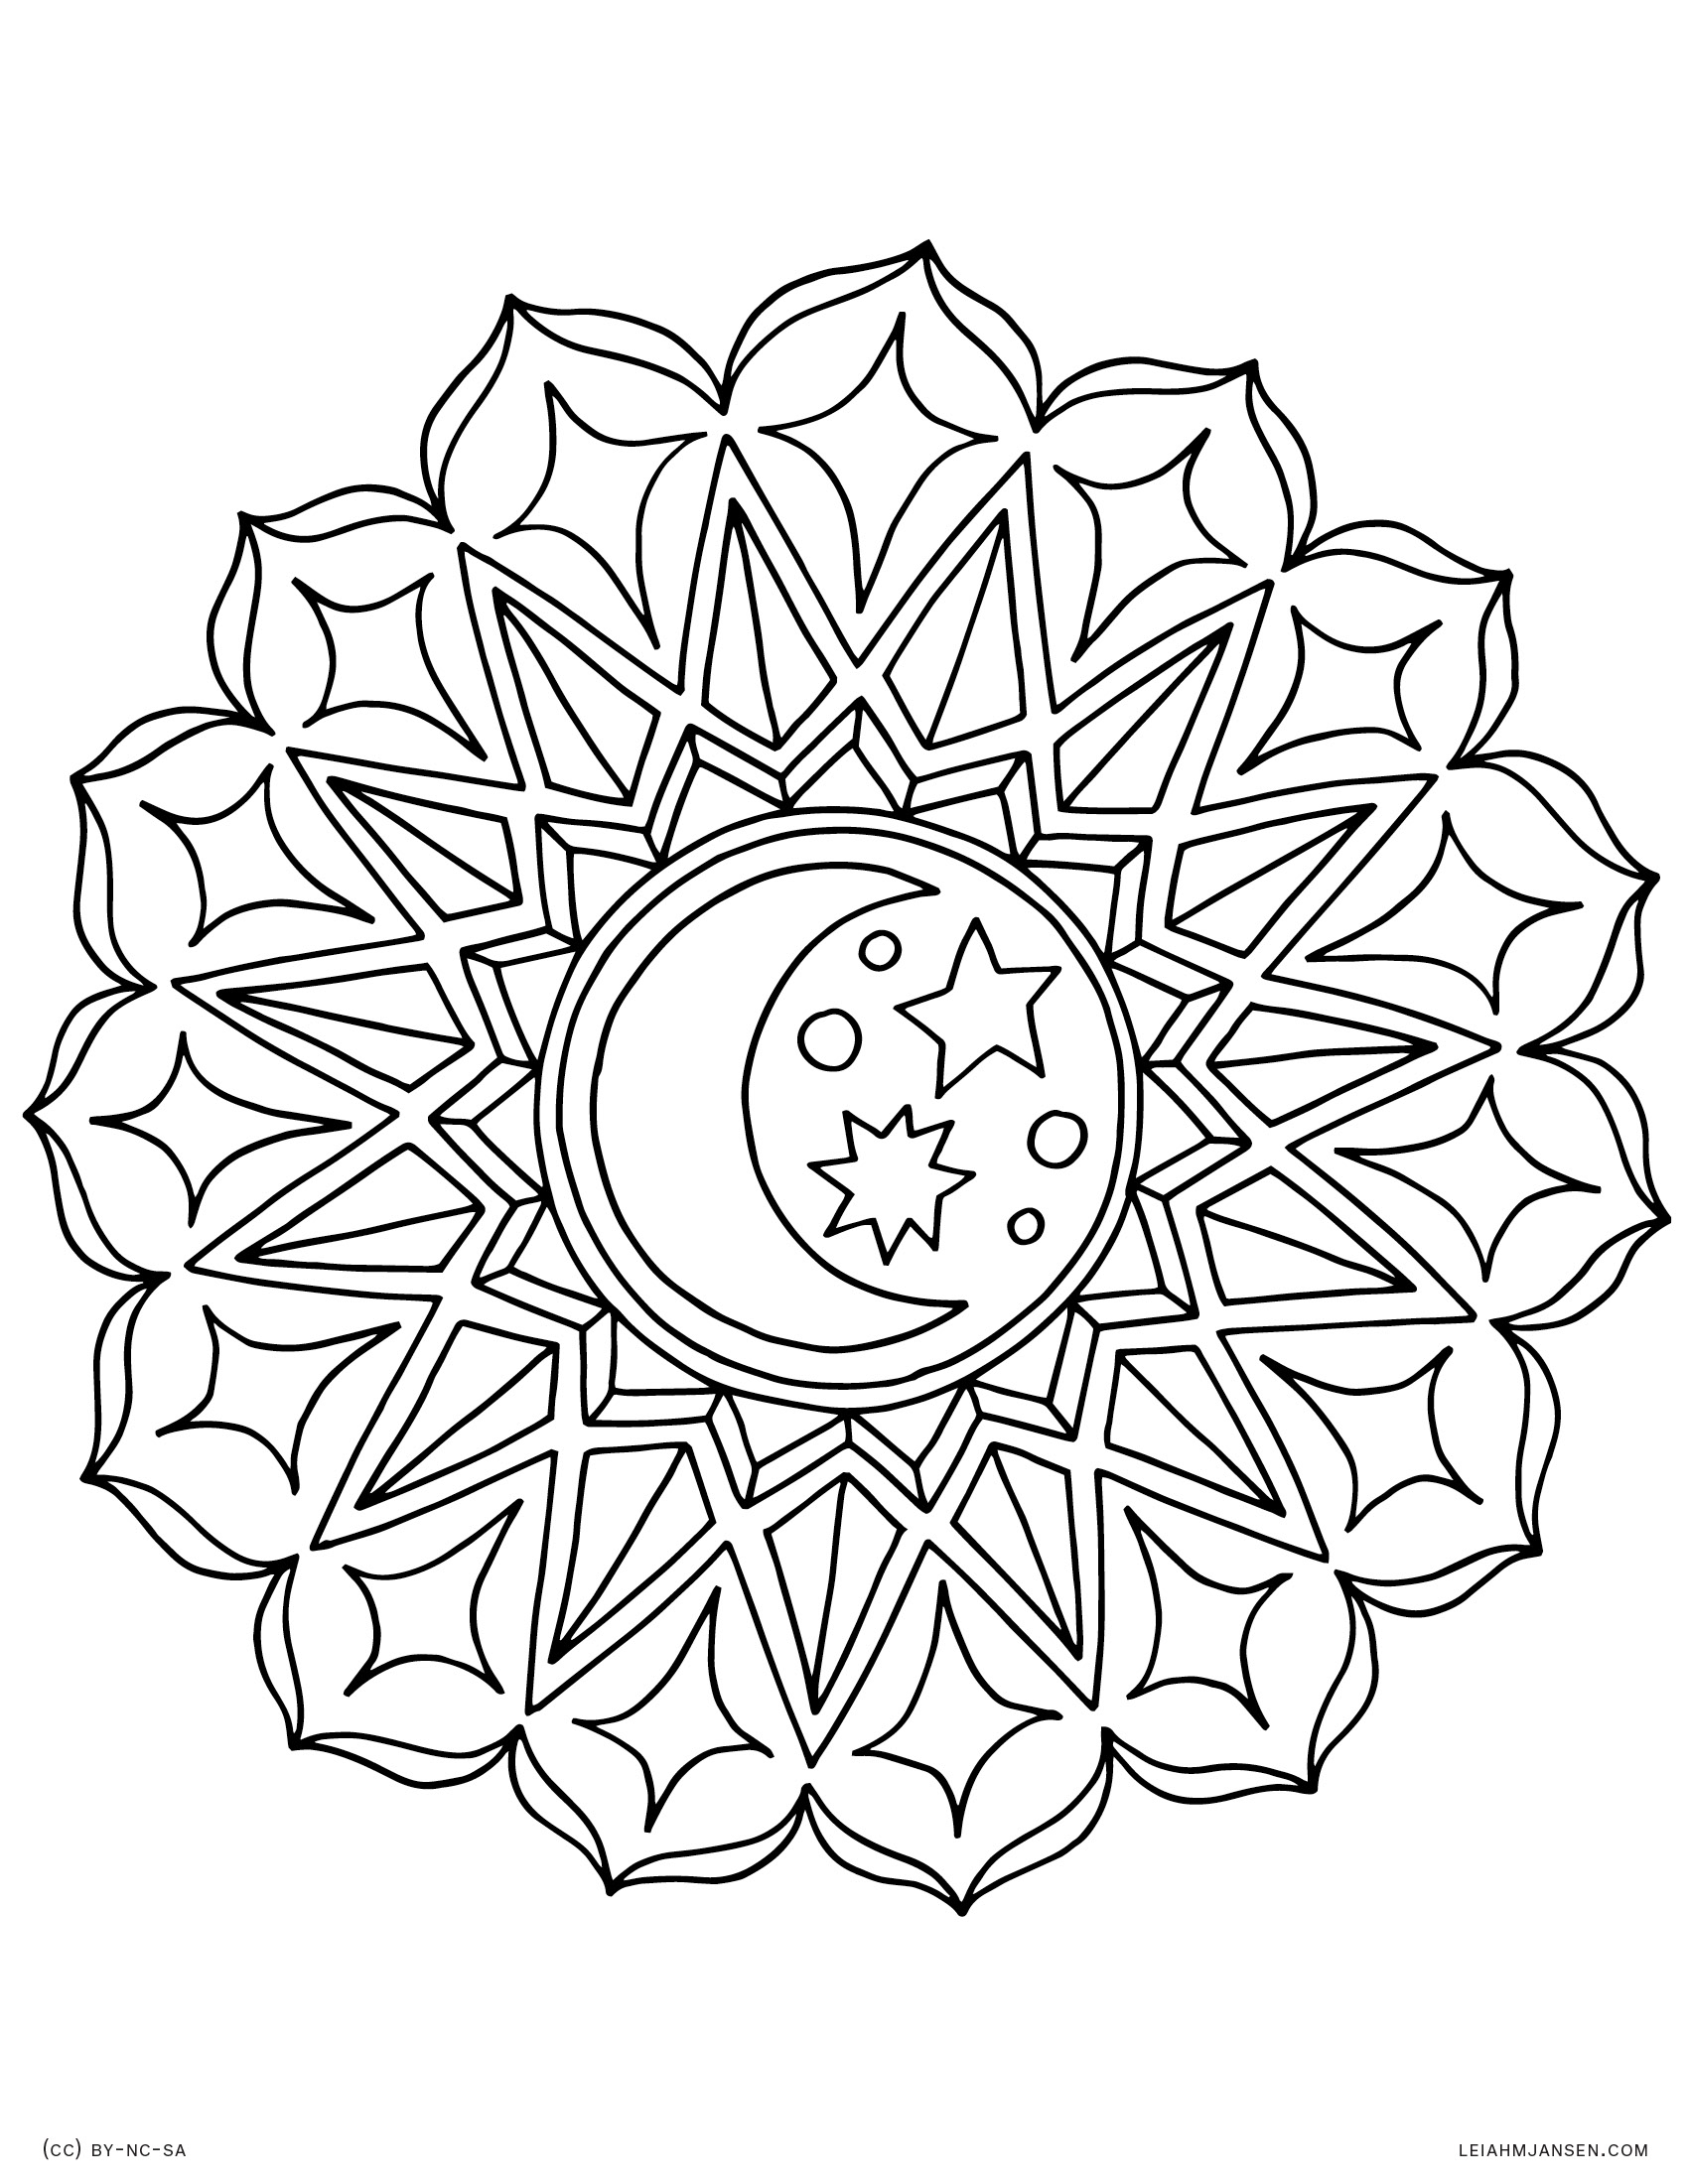 stars for coloring color the stars blue red and yellow coloring page for coloring stars